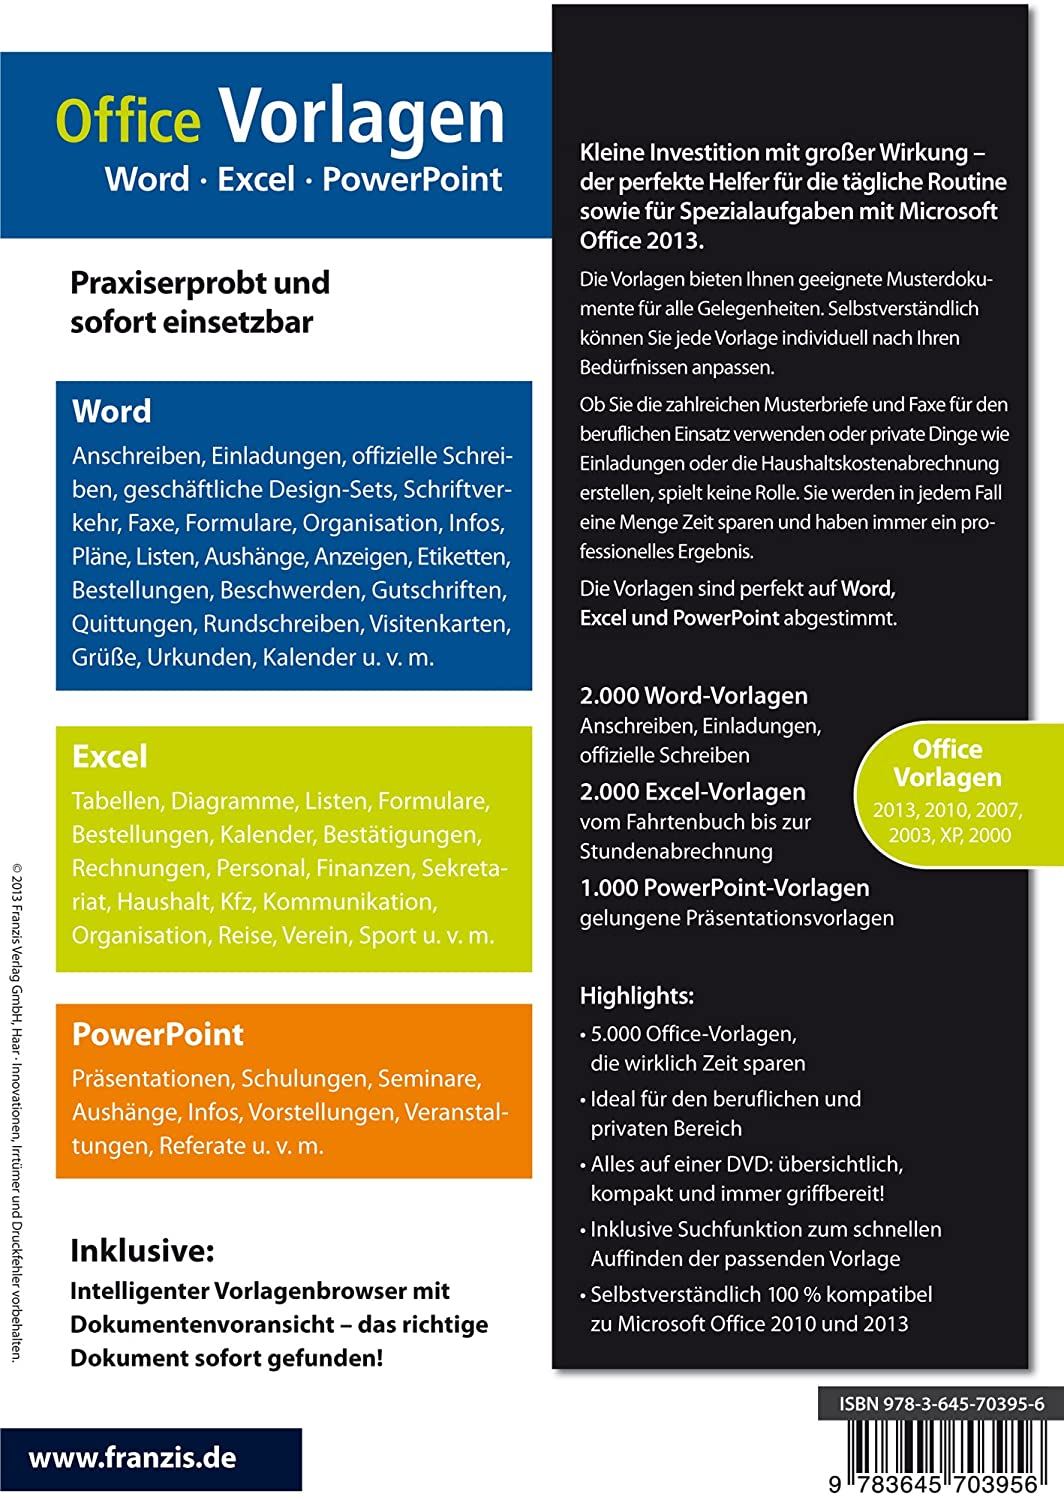 Office Vorlagen: Word - Excel - PowerPoint - Das Vorlagenpaket, DVD ...